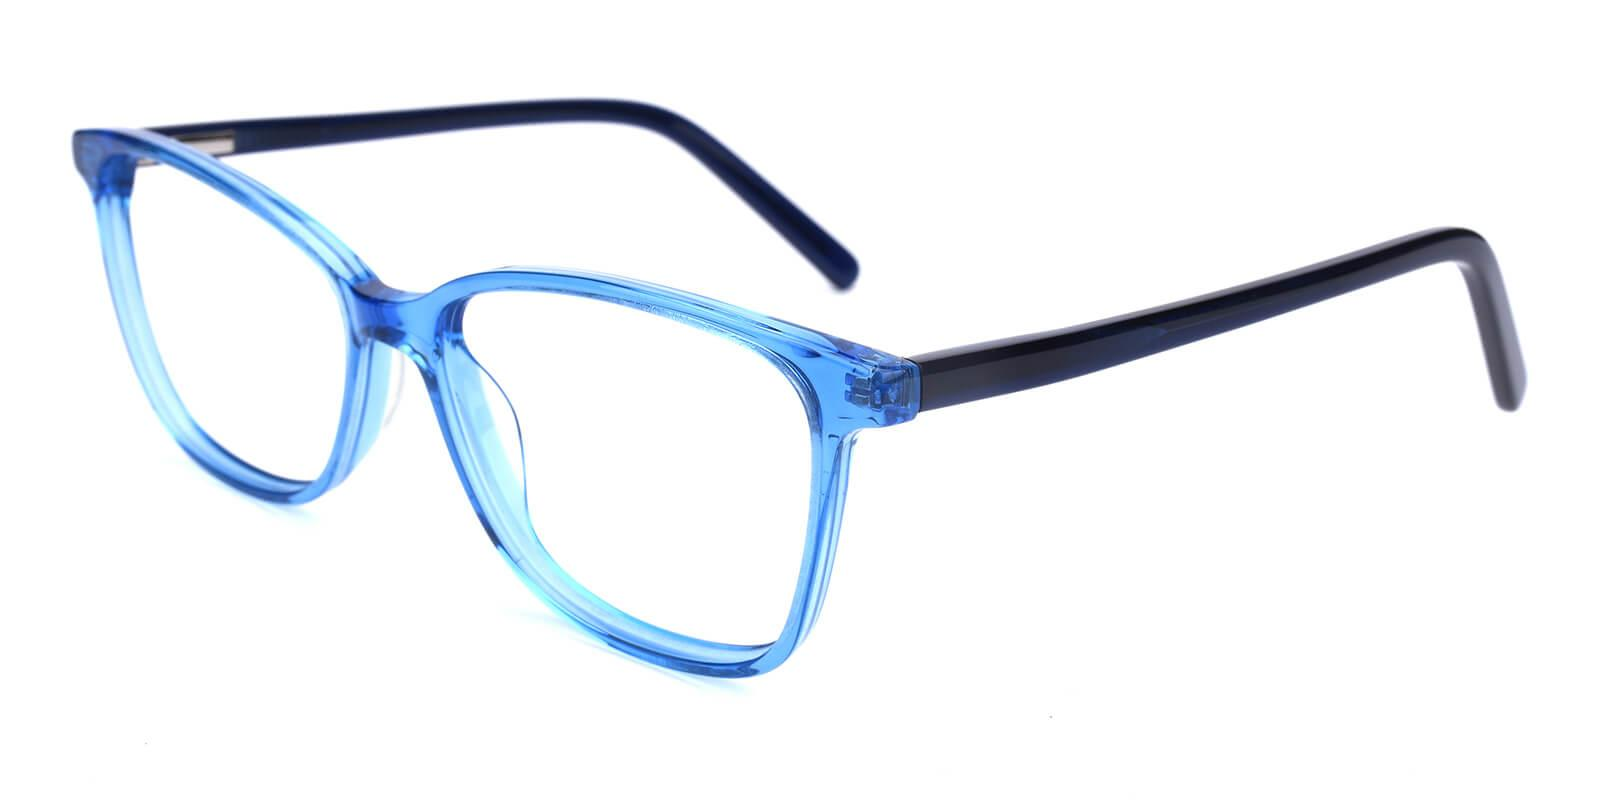 Believe-Blue-Square / Cat-Acetate-Eyeglasses-additional1